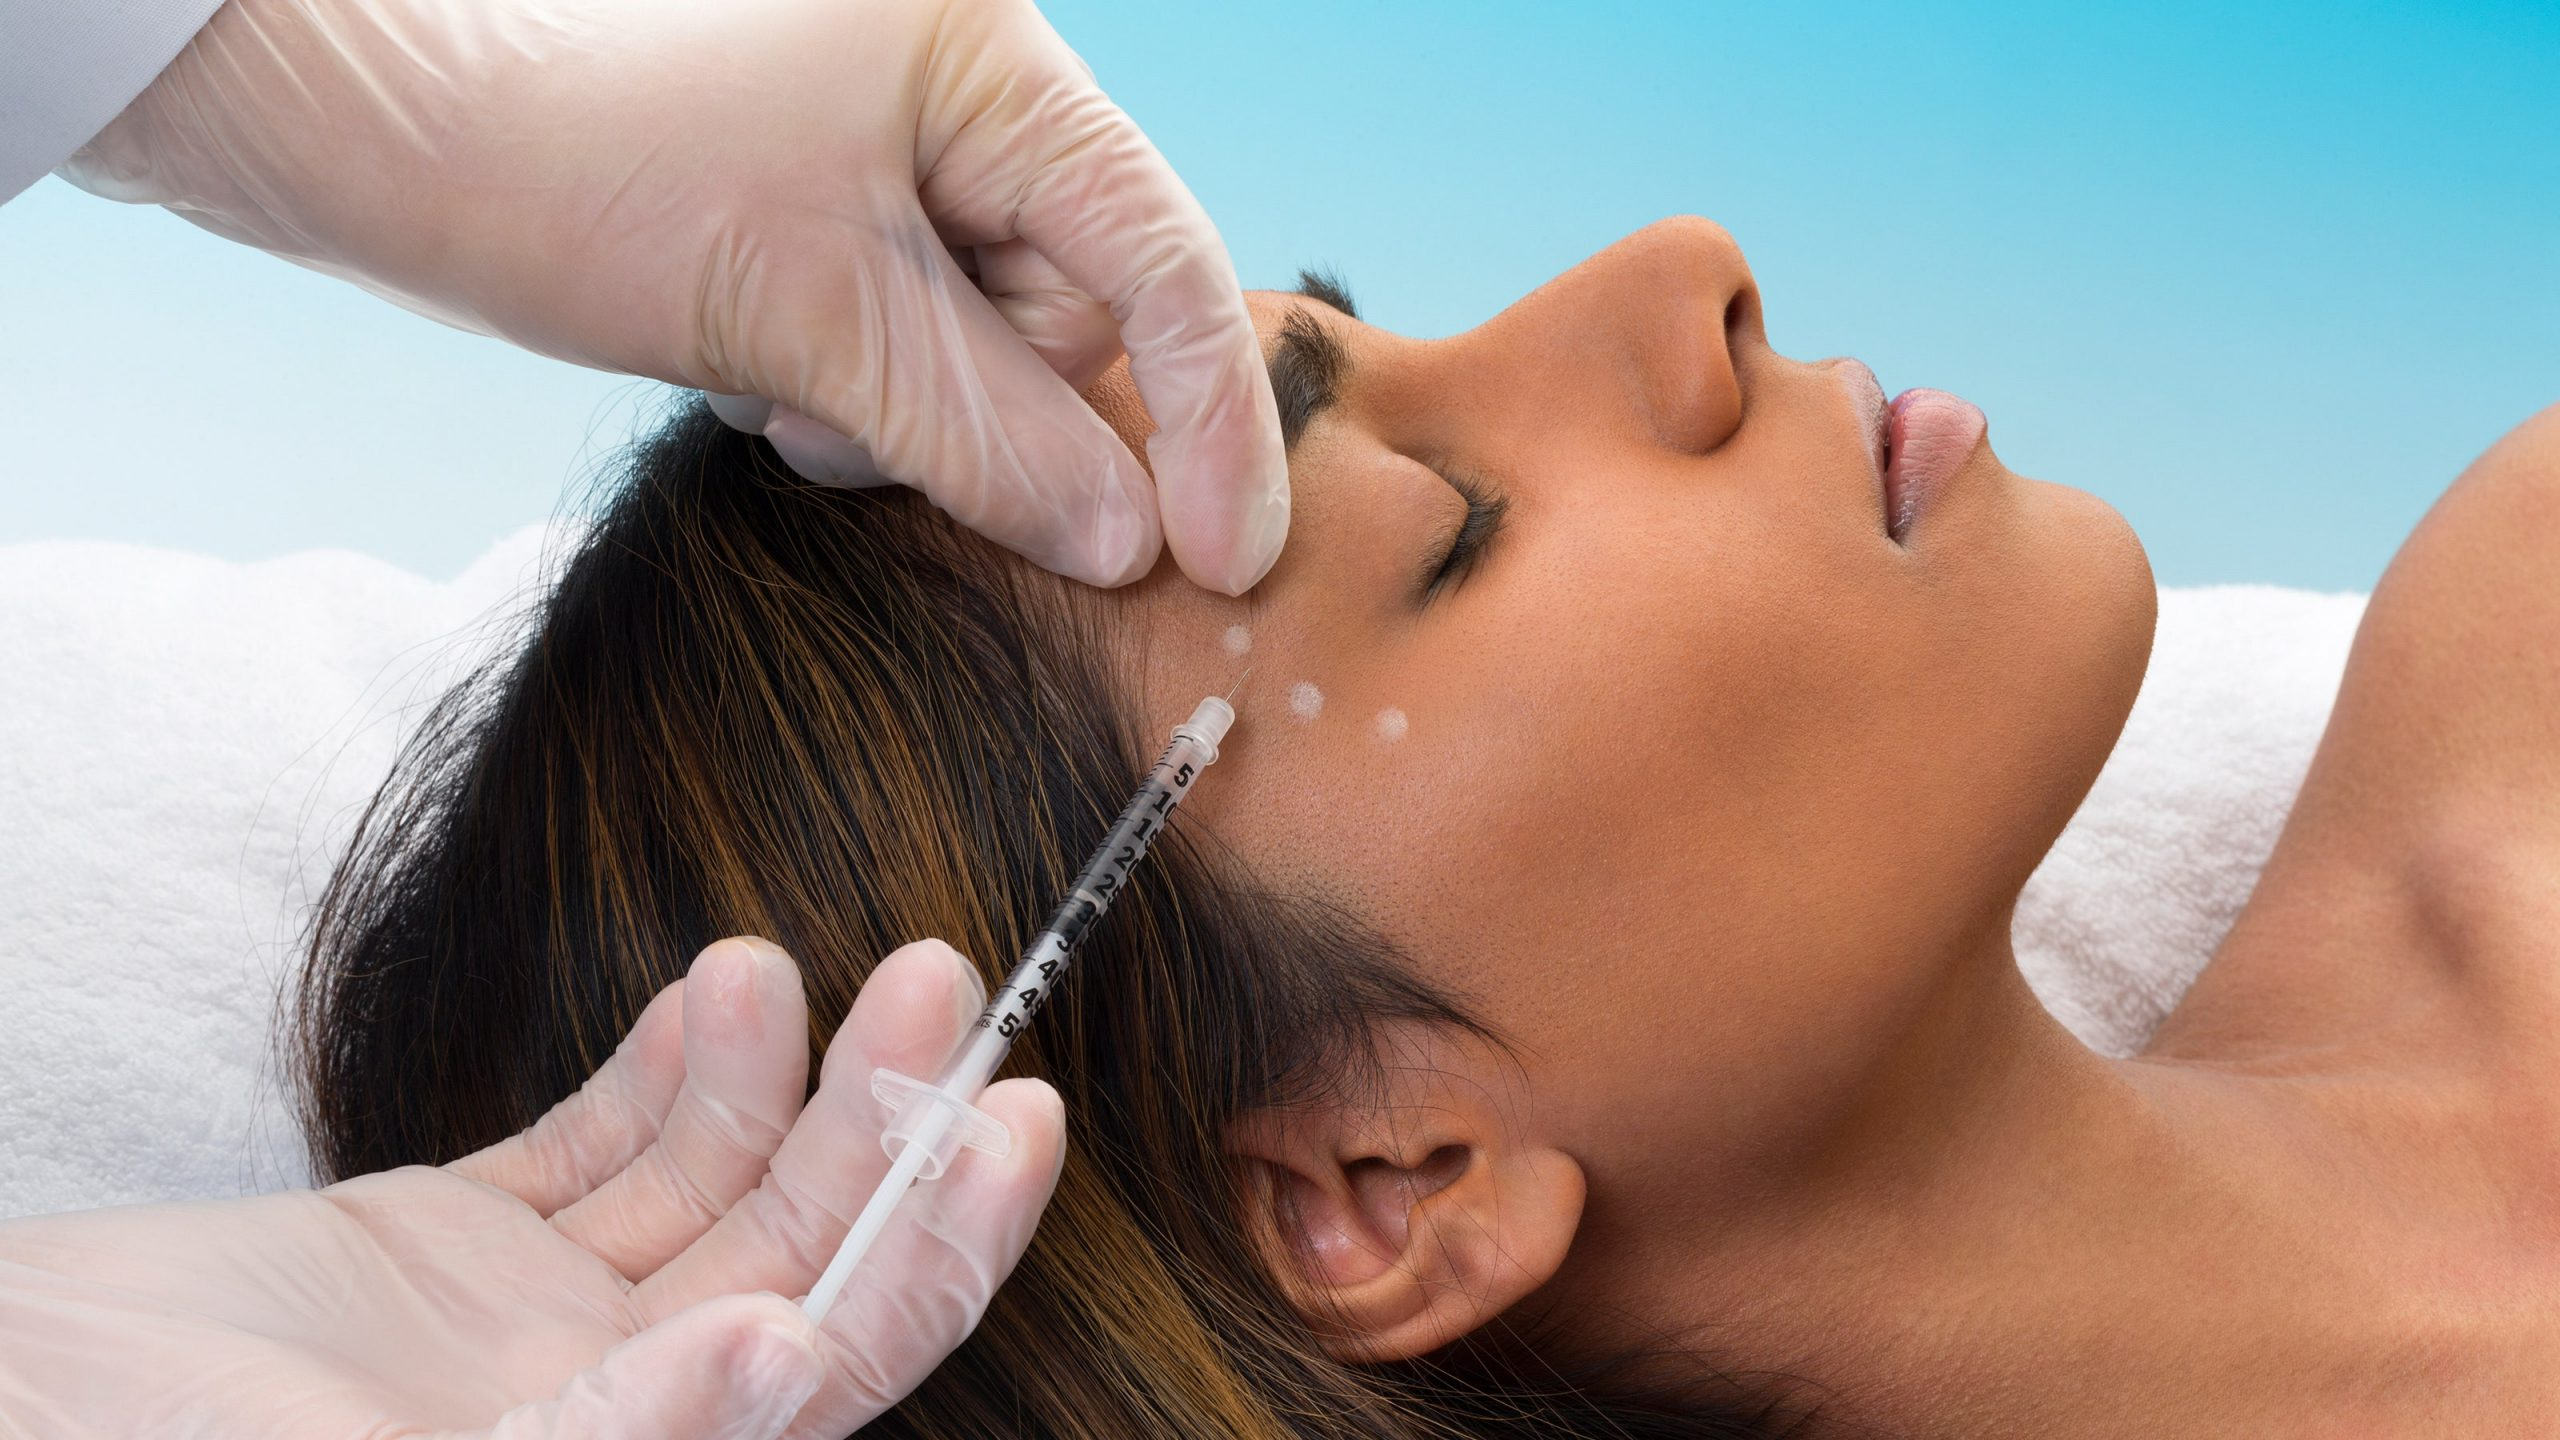 6 Questions To Ask Your Doctor Before Getting A Botox Treatment